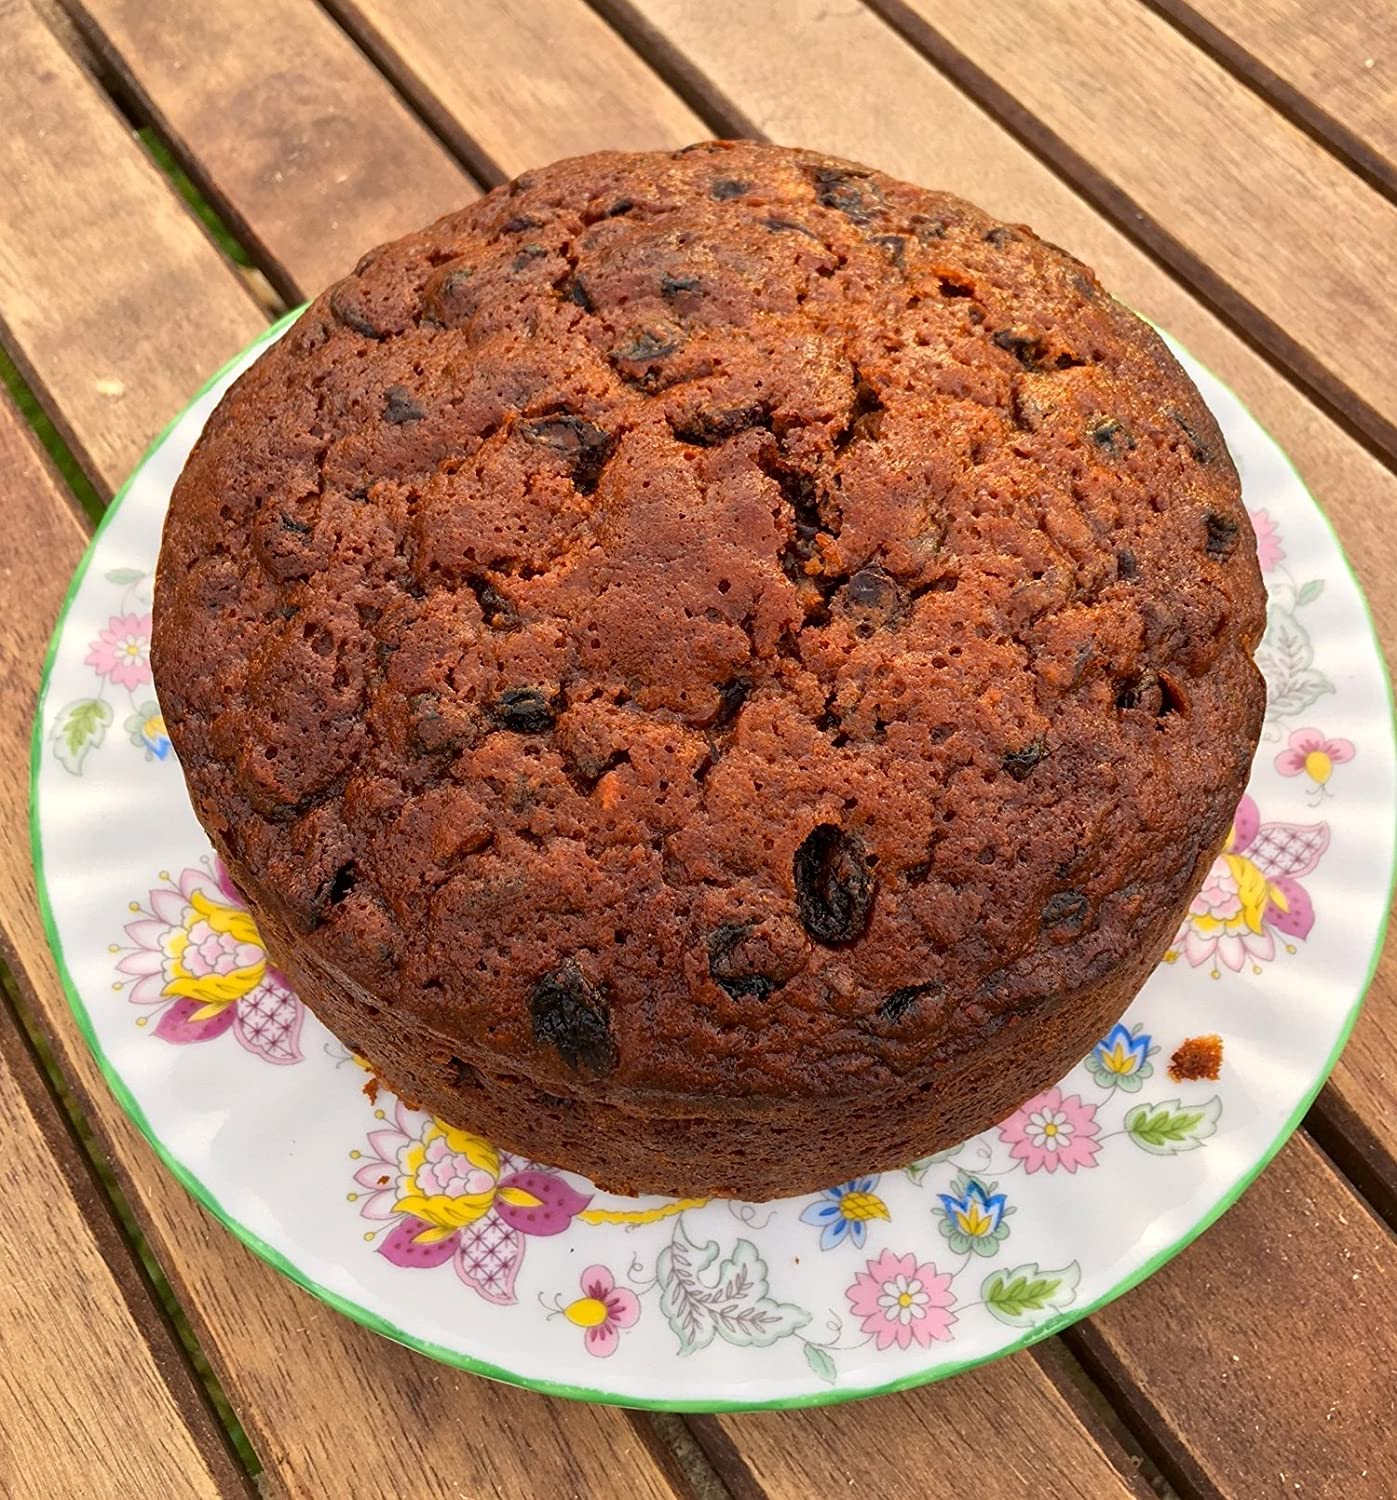 Bizzibeans Christmas Fruit Cake, Christmas Cake made with Brandy Soaked Fruit, 1.3kg. 20cm